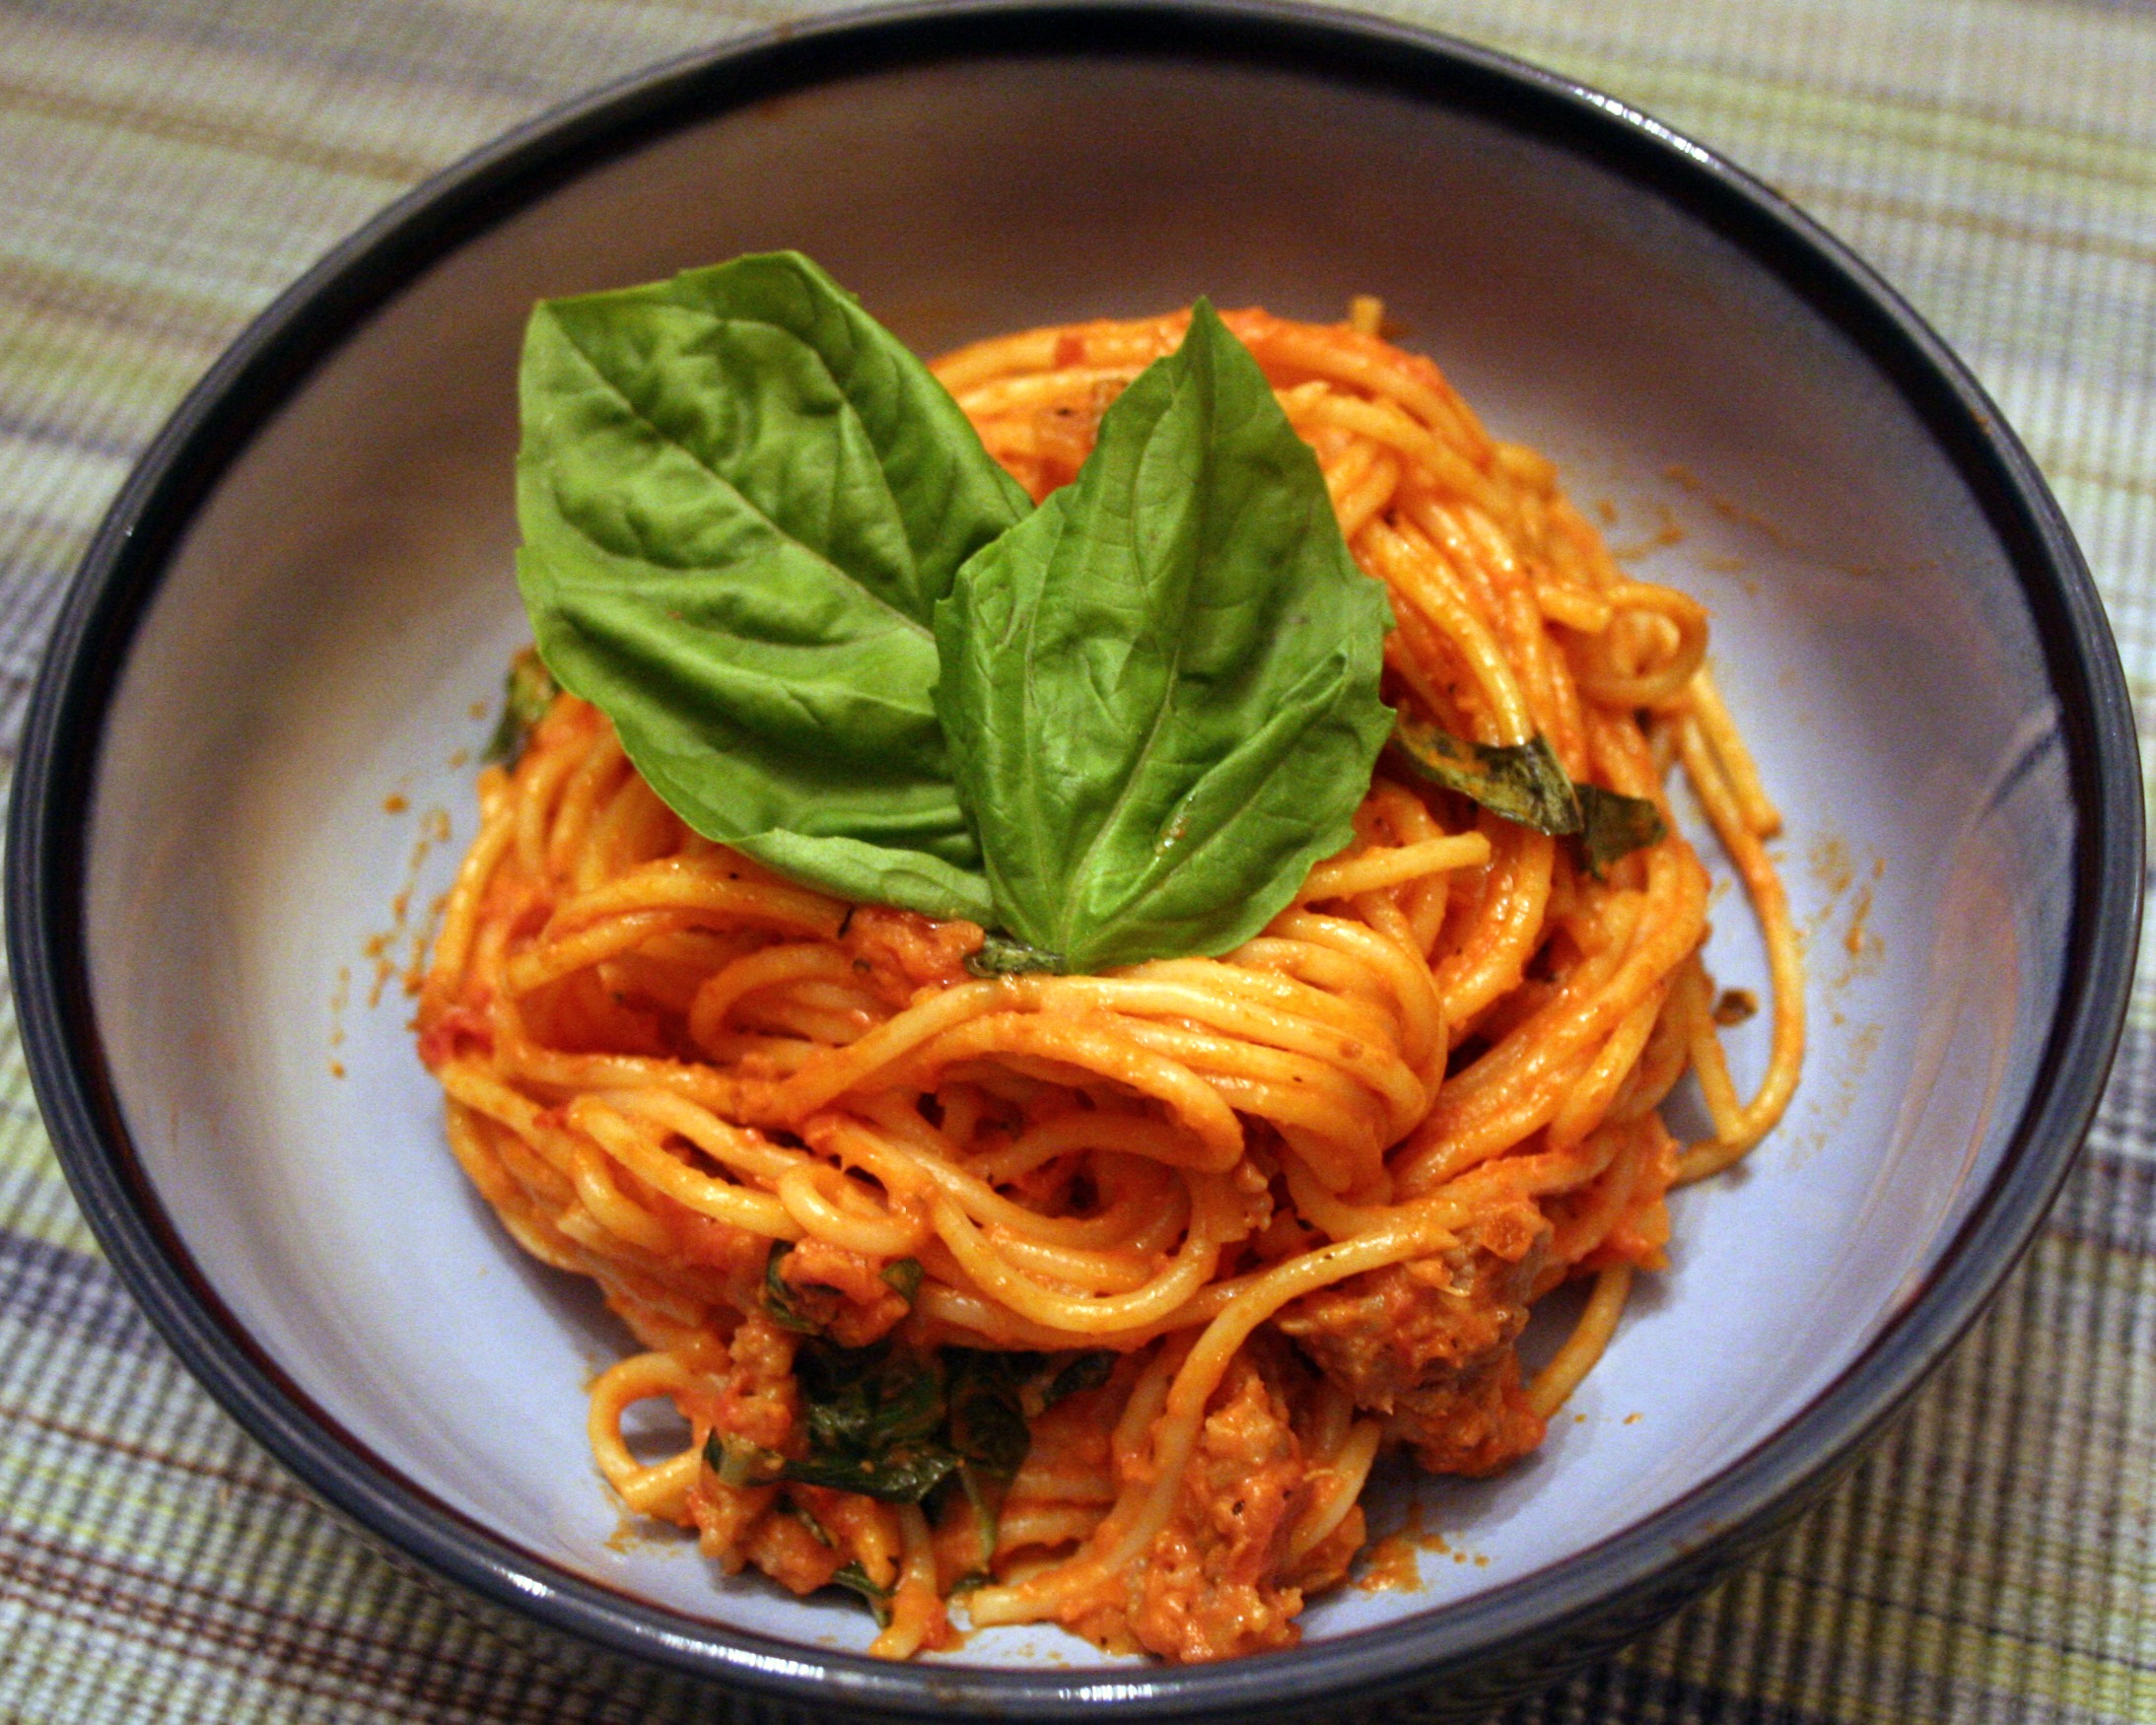 ... breadcrumbs angel hair pasta with spicy vodka sauce vodka cream sauce